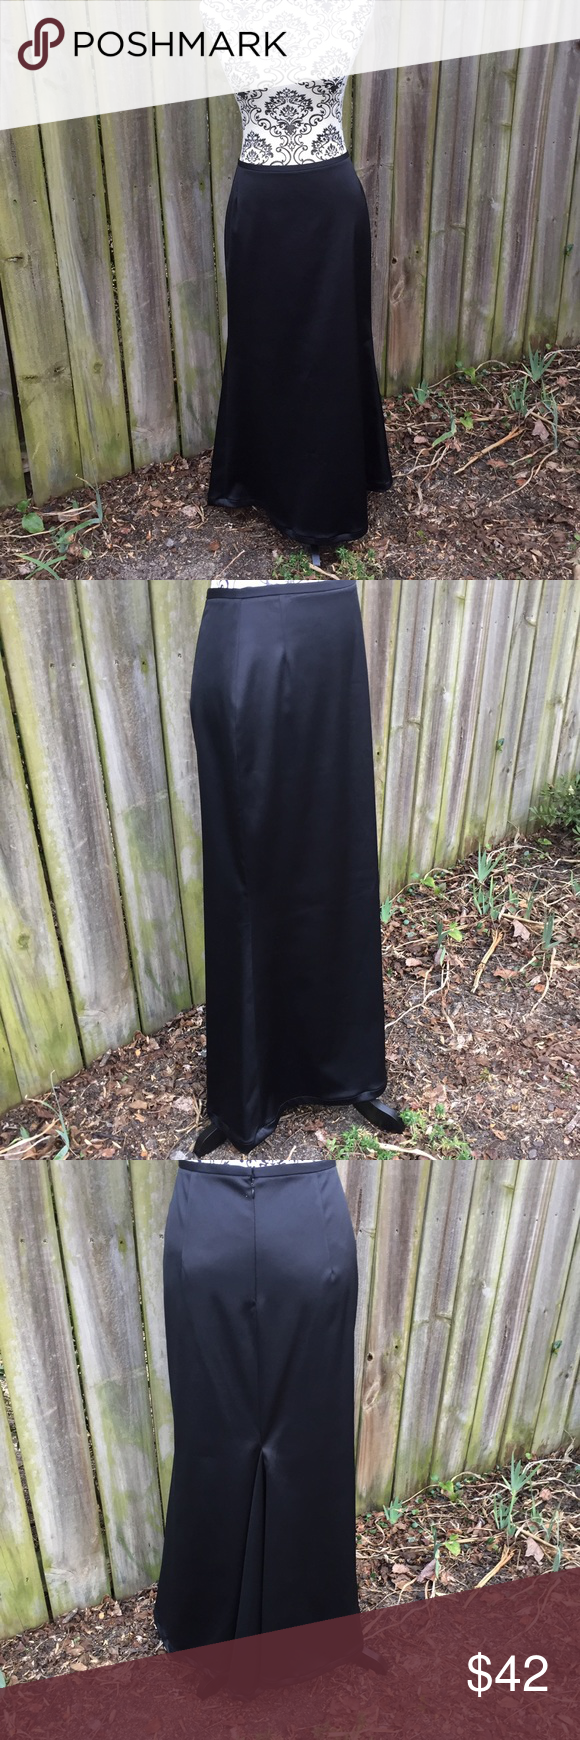 "Long Formal black skirt JS Collection sz 8 Black long formal skirt by JM Collection. ECU. Measurements laying flat are: 14"" waist, 37"" long. Hidden back zipper. 97% polyester and 3% spandex. 🦄Suggested User🦄 🦋I love to bundle🦋 JS Collections Skirts"